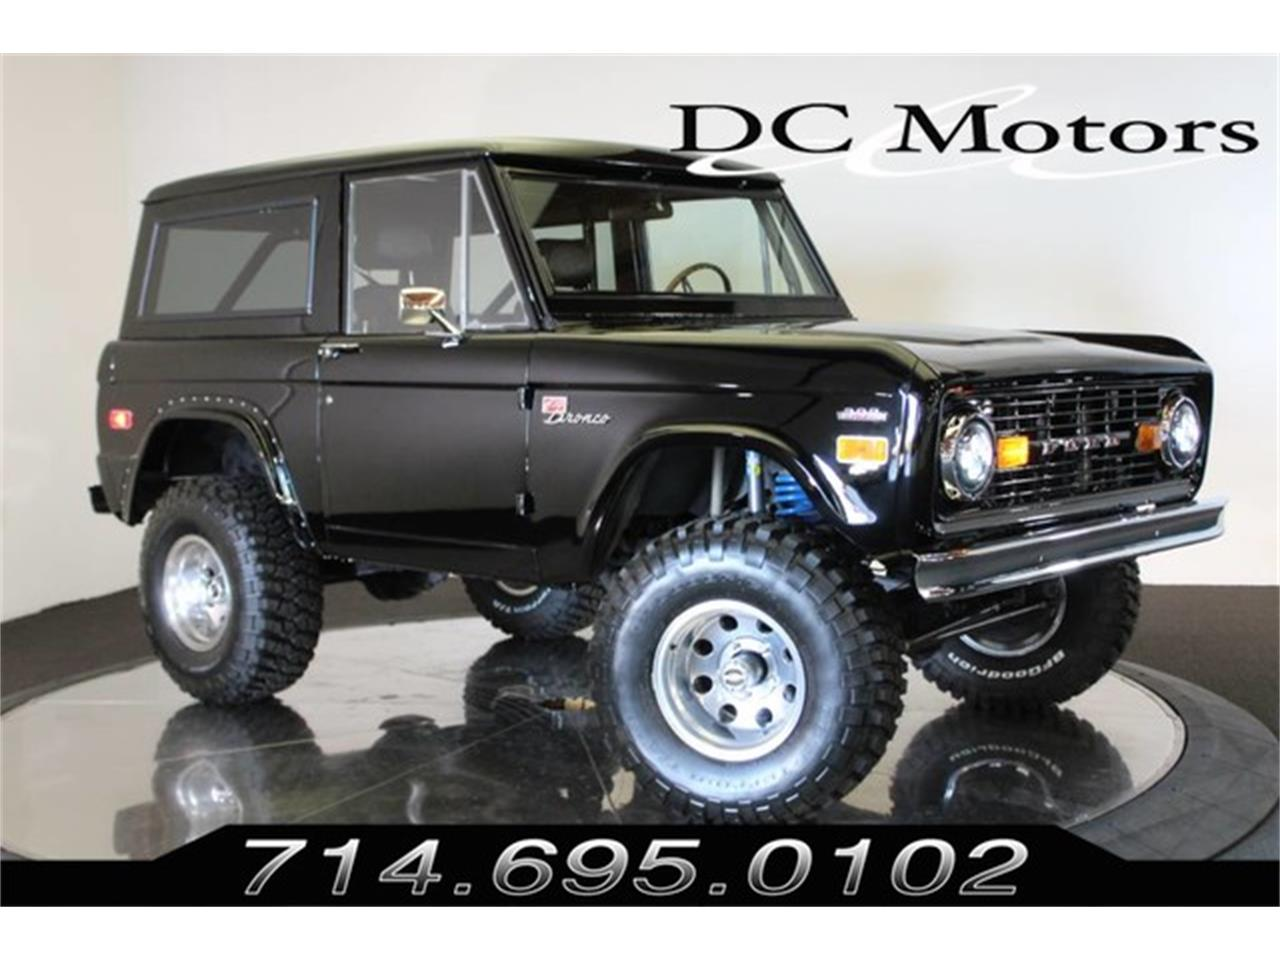 1972 Ford Bronco For Sale In Anaheim Ca Classiccarsbay Com